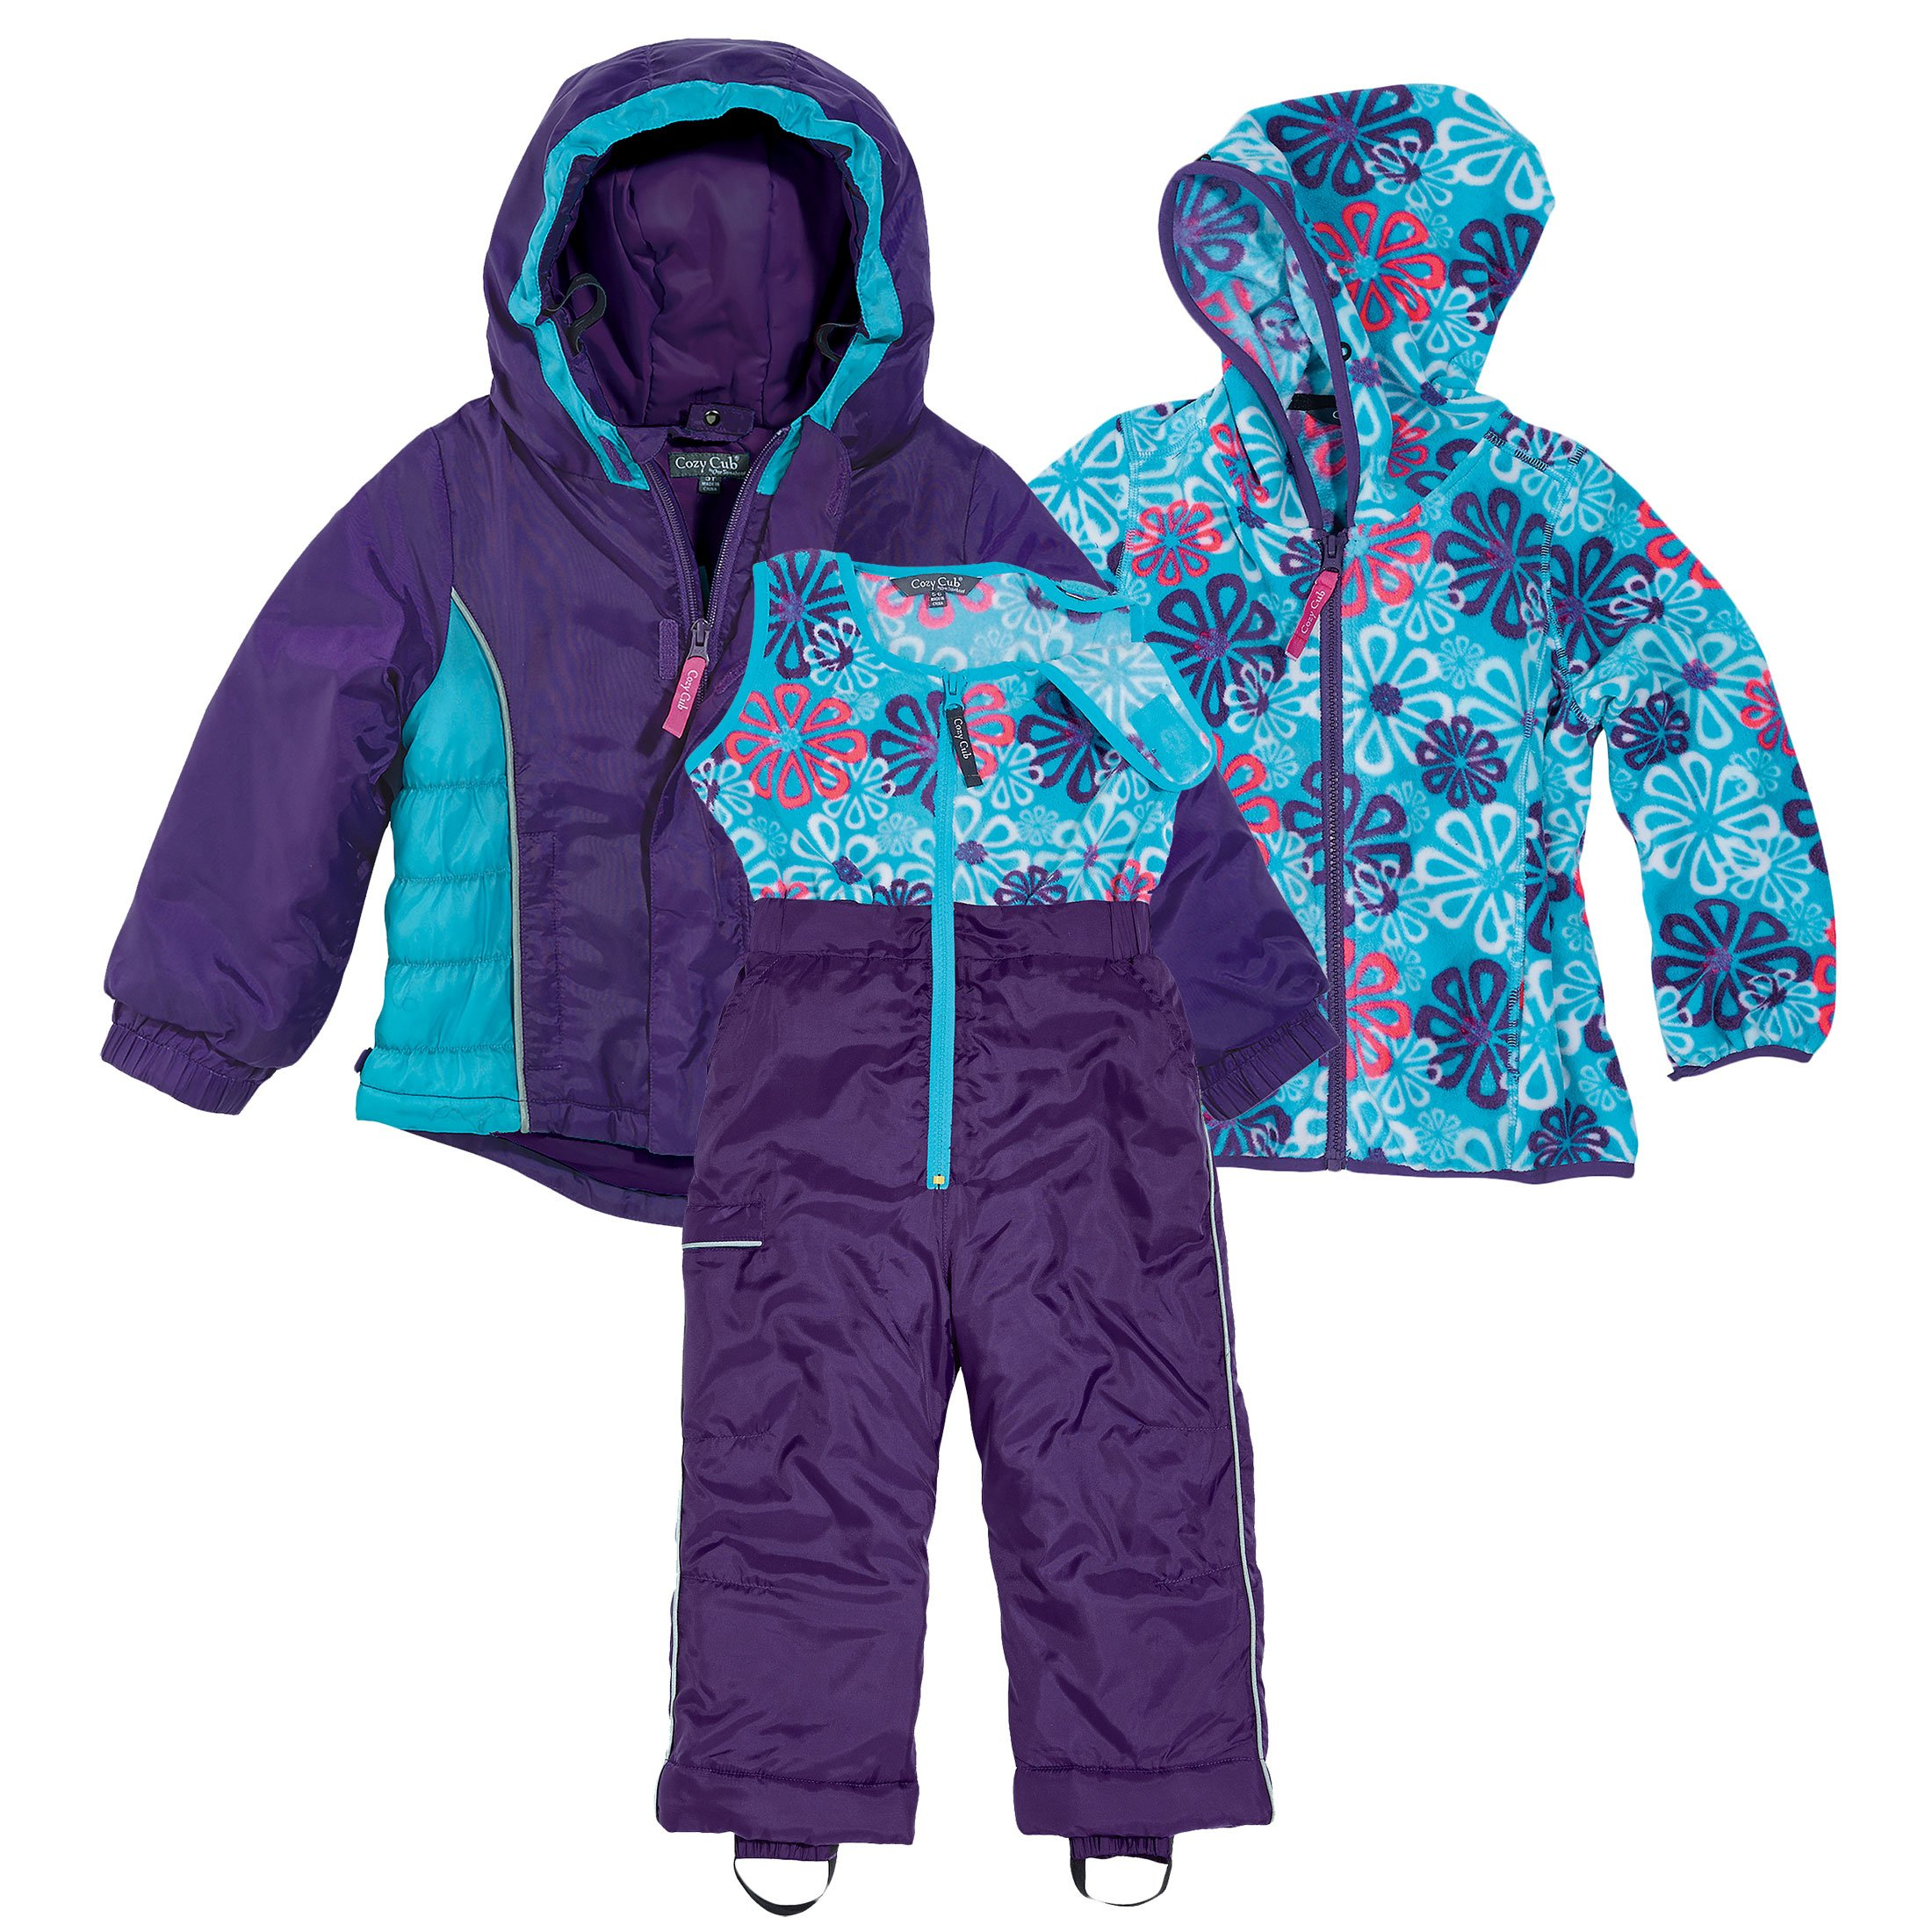 Purple and Blue Girls 3 Piece Winter Snow Suit by Cozy Cub, Size 2T